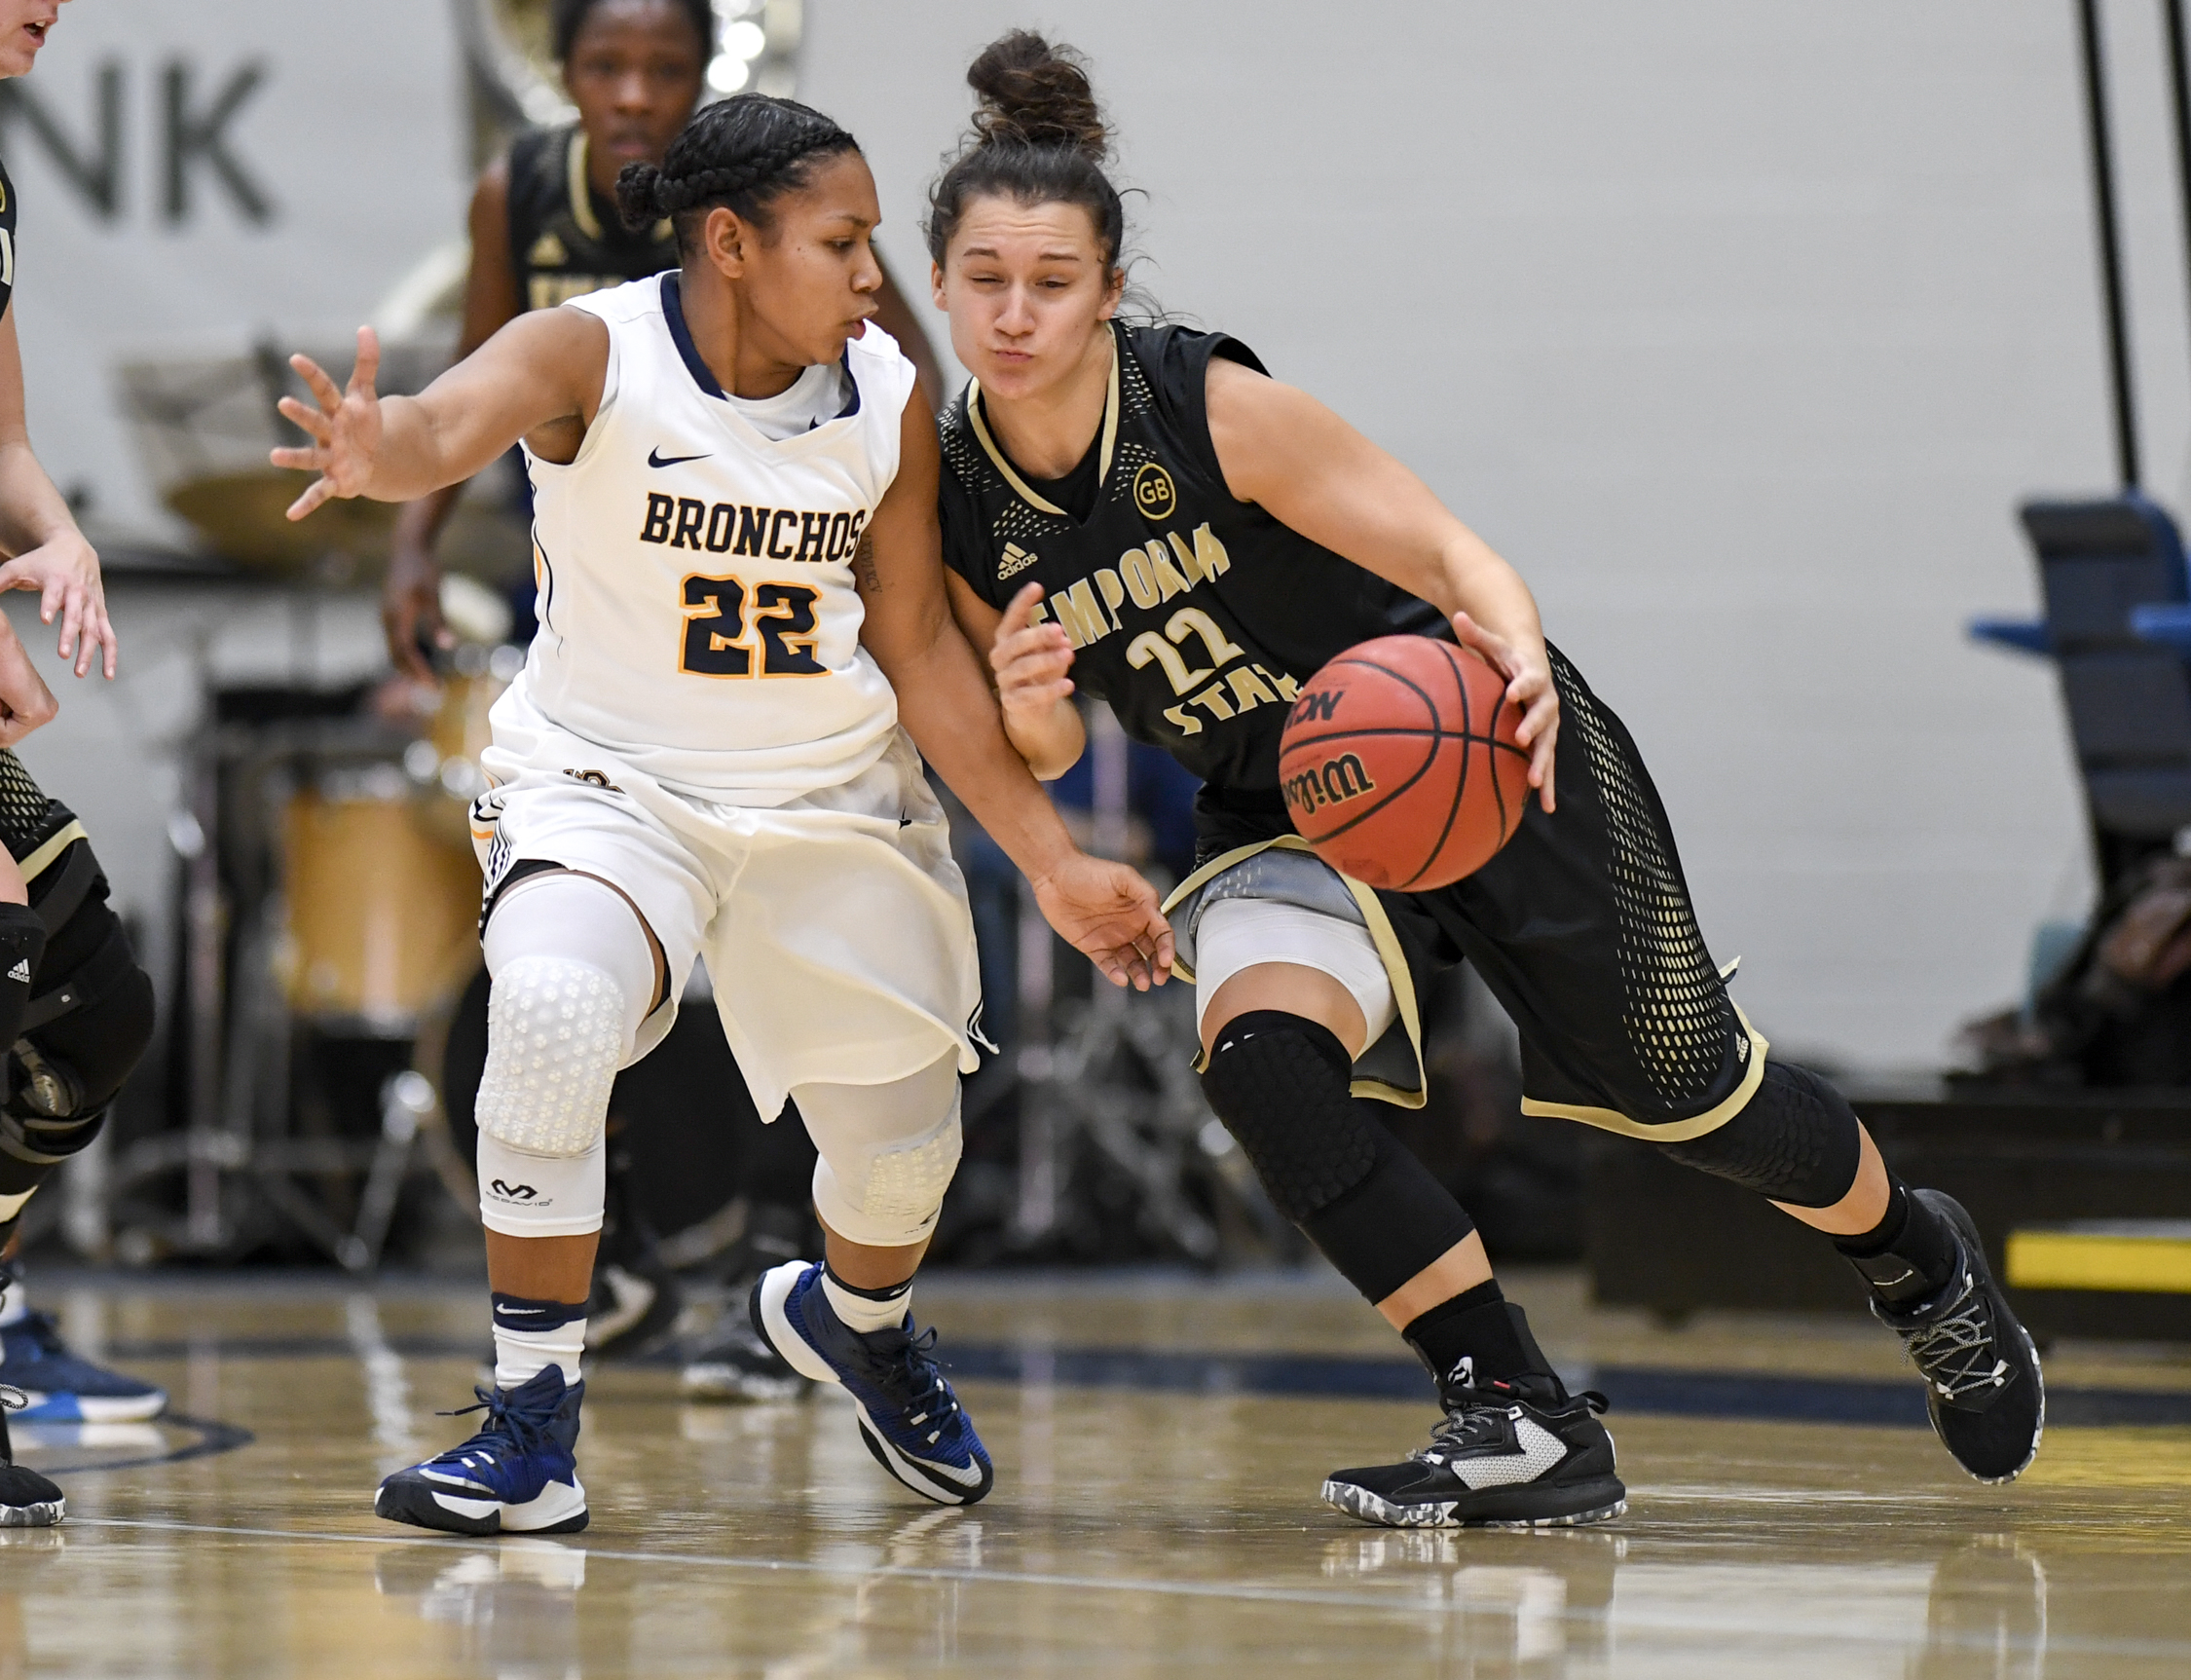 Women's basketball: Bronchos Upset 2nd-Ranked Emporia State